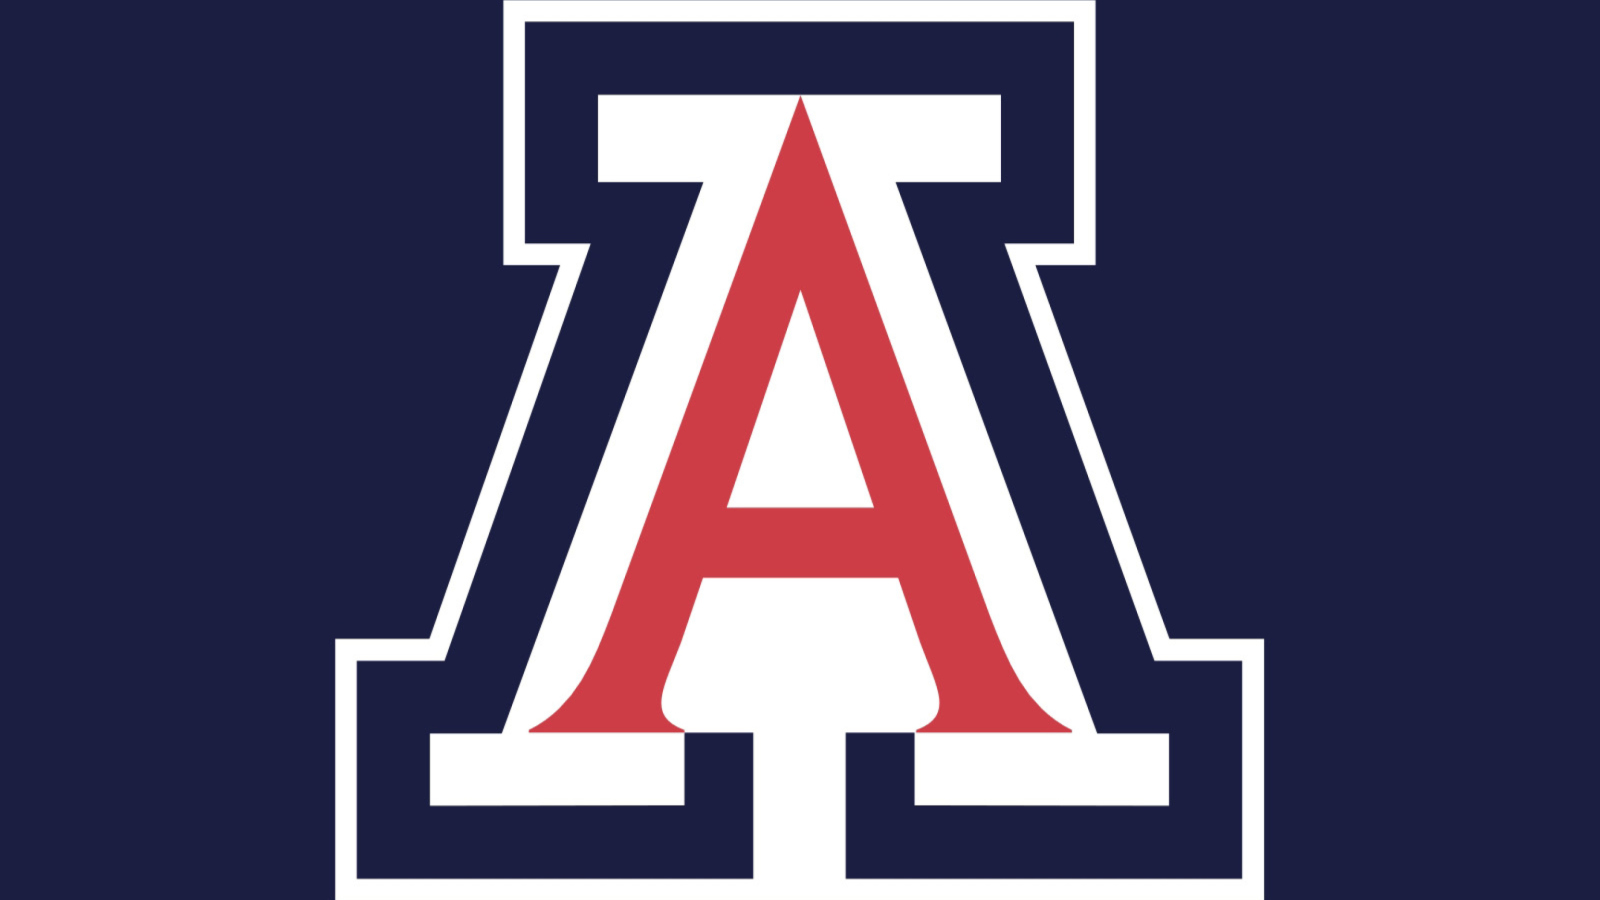 Arizona Wildcats Mobile Wallpaper   Download Mobile Wallpapers at 1600x900